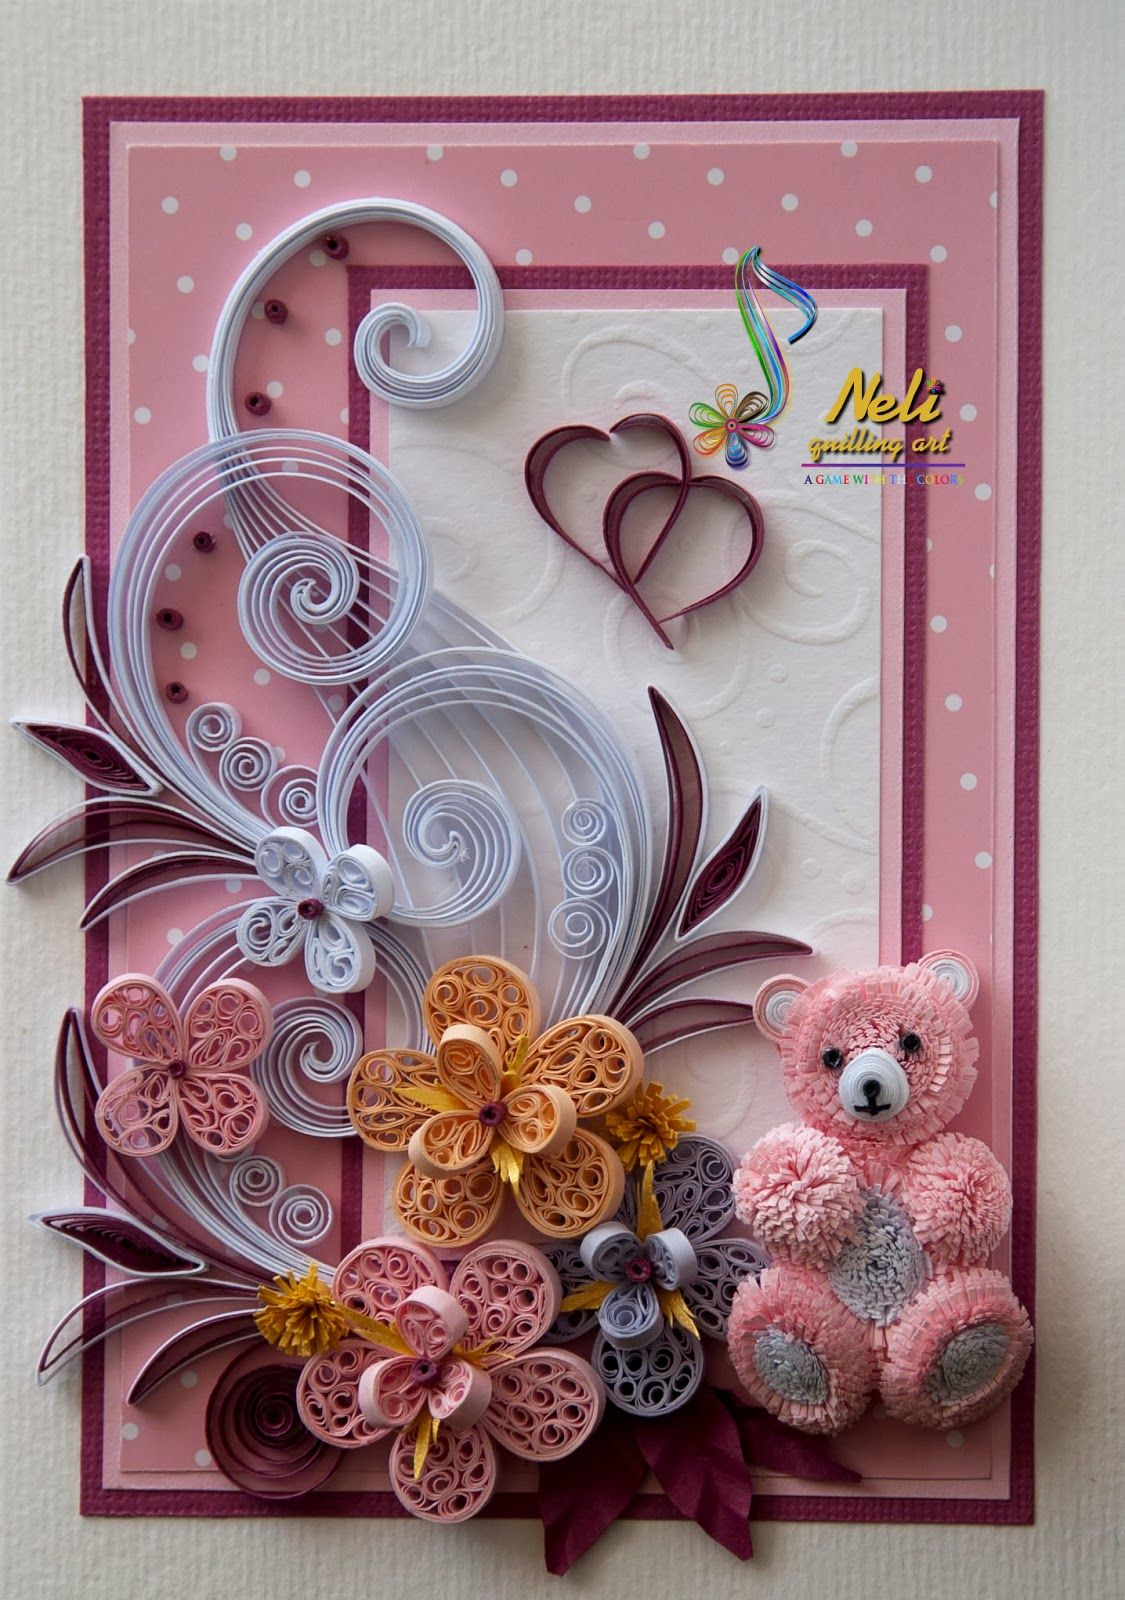 Neli Quilling Card And Teddy Bear Quilling Neli